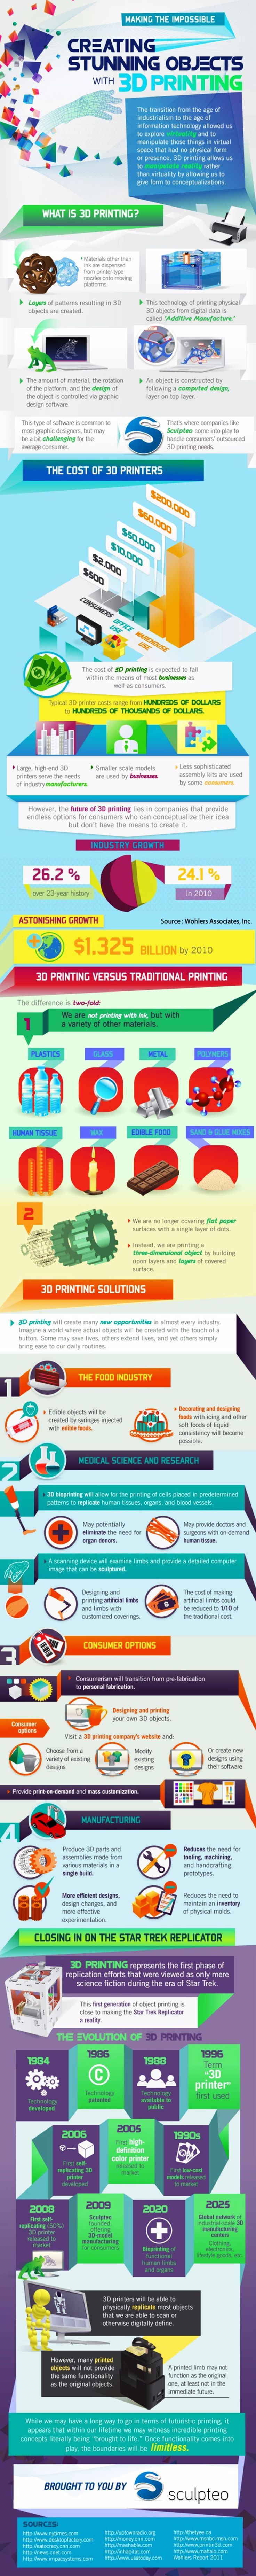 Creating Stunning Objects with 3D Printing Infographic. Topic: Technolog, print,...